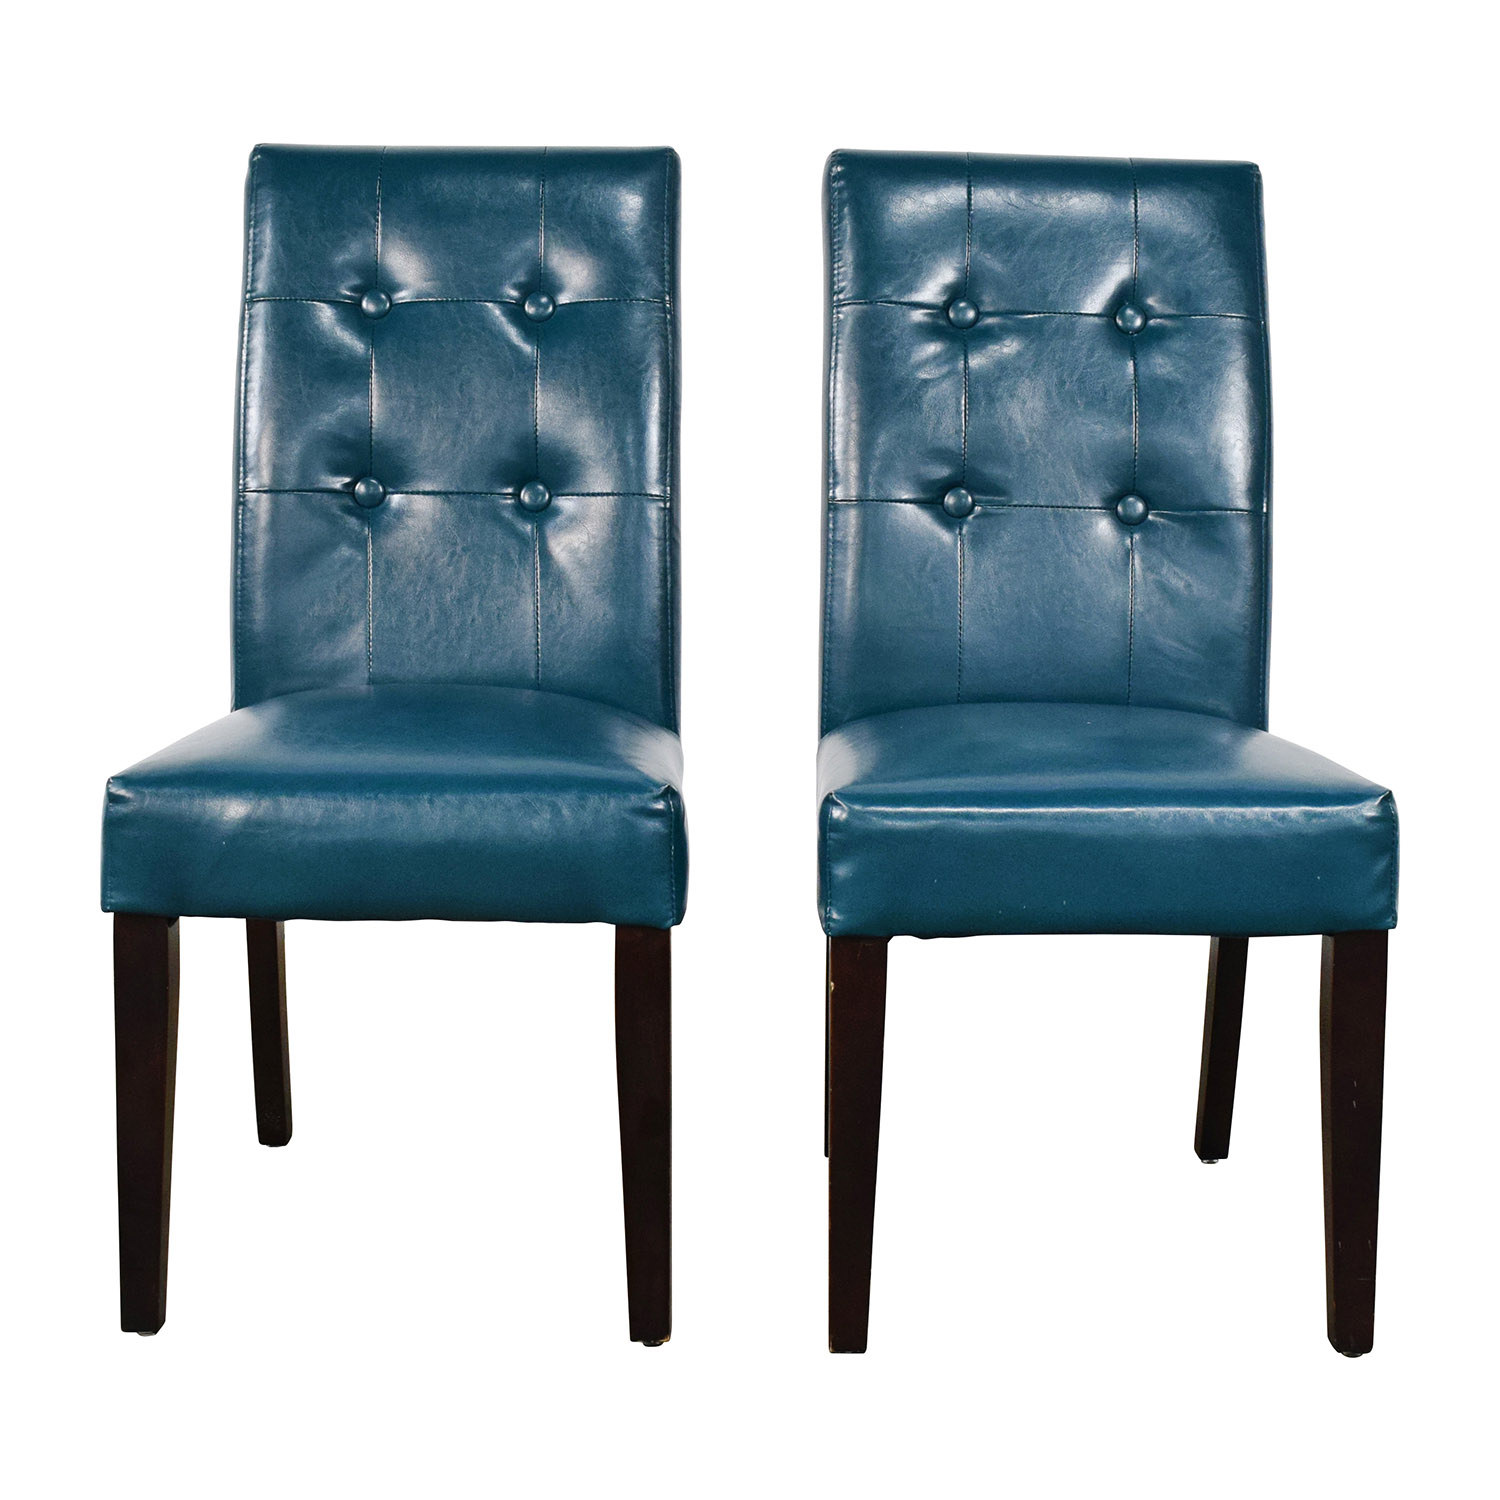 68% OFF Nicole White Leather Dining Chairs Chairs